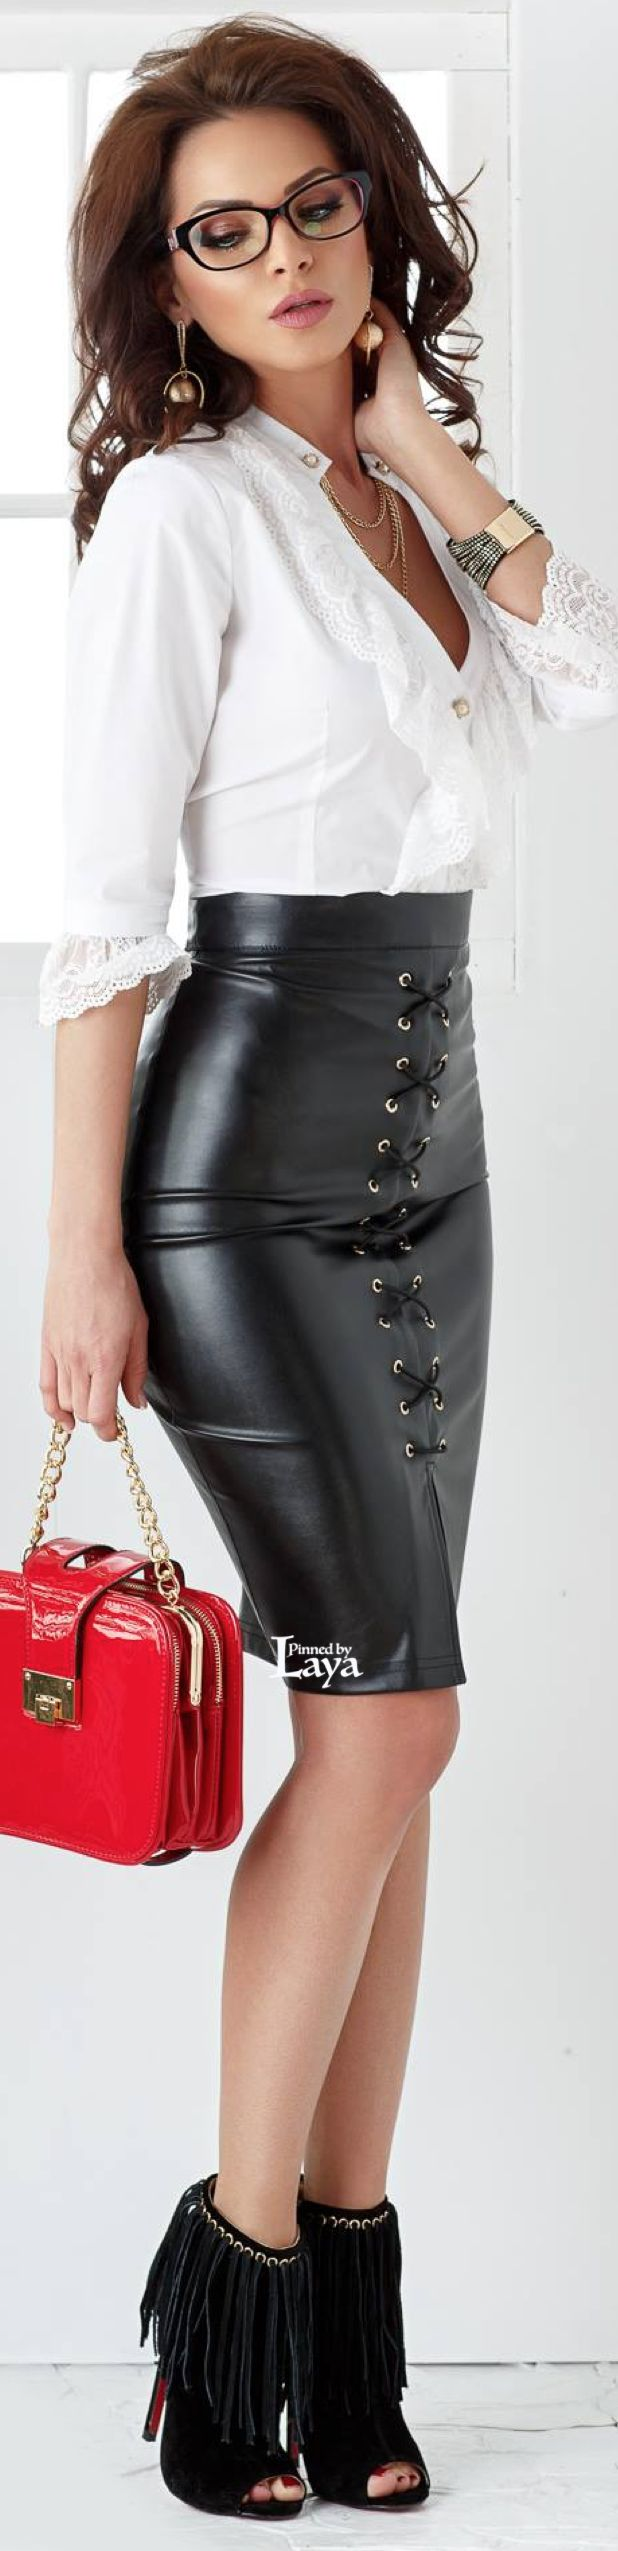 White blouse & black leather skirt